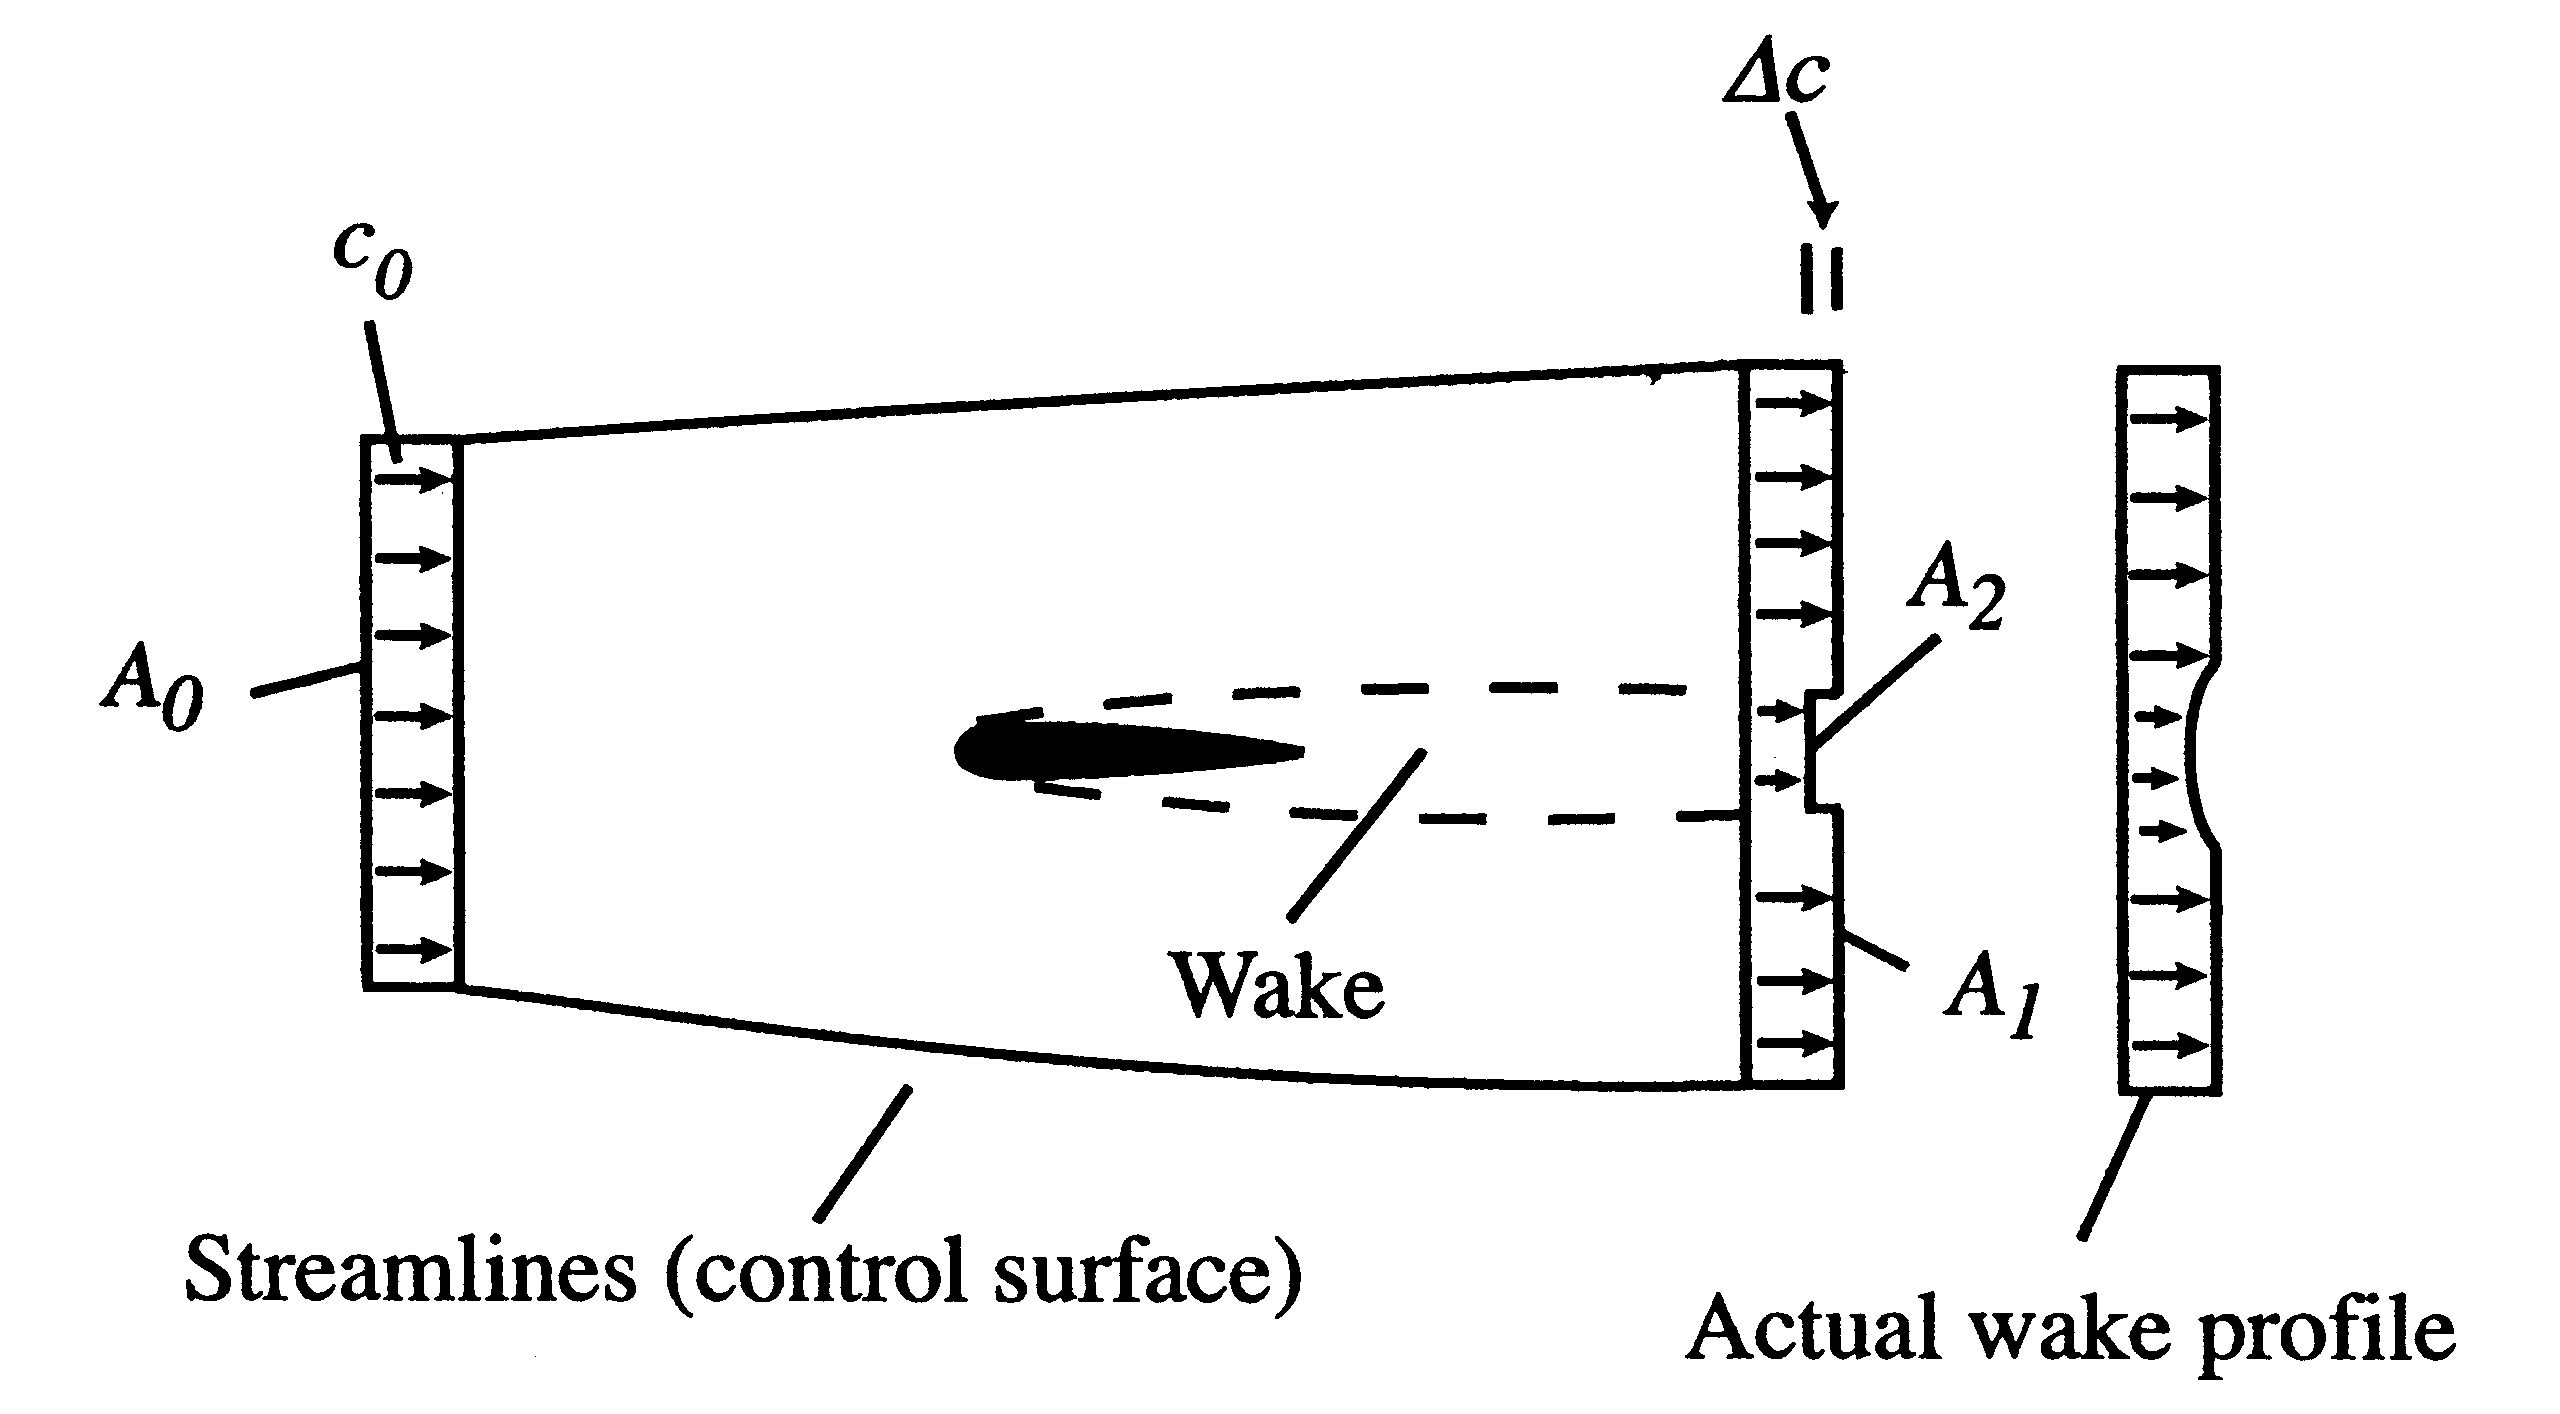 67 Examples Of Lost Work In Engineering Processes 2 Stroke Engine Pv Diagram Image Fig3airfoilwithwake